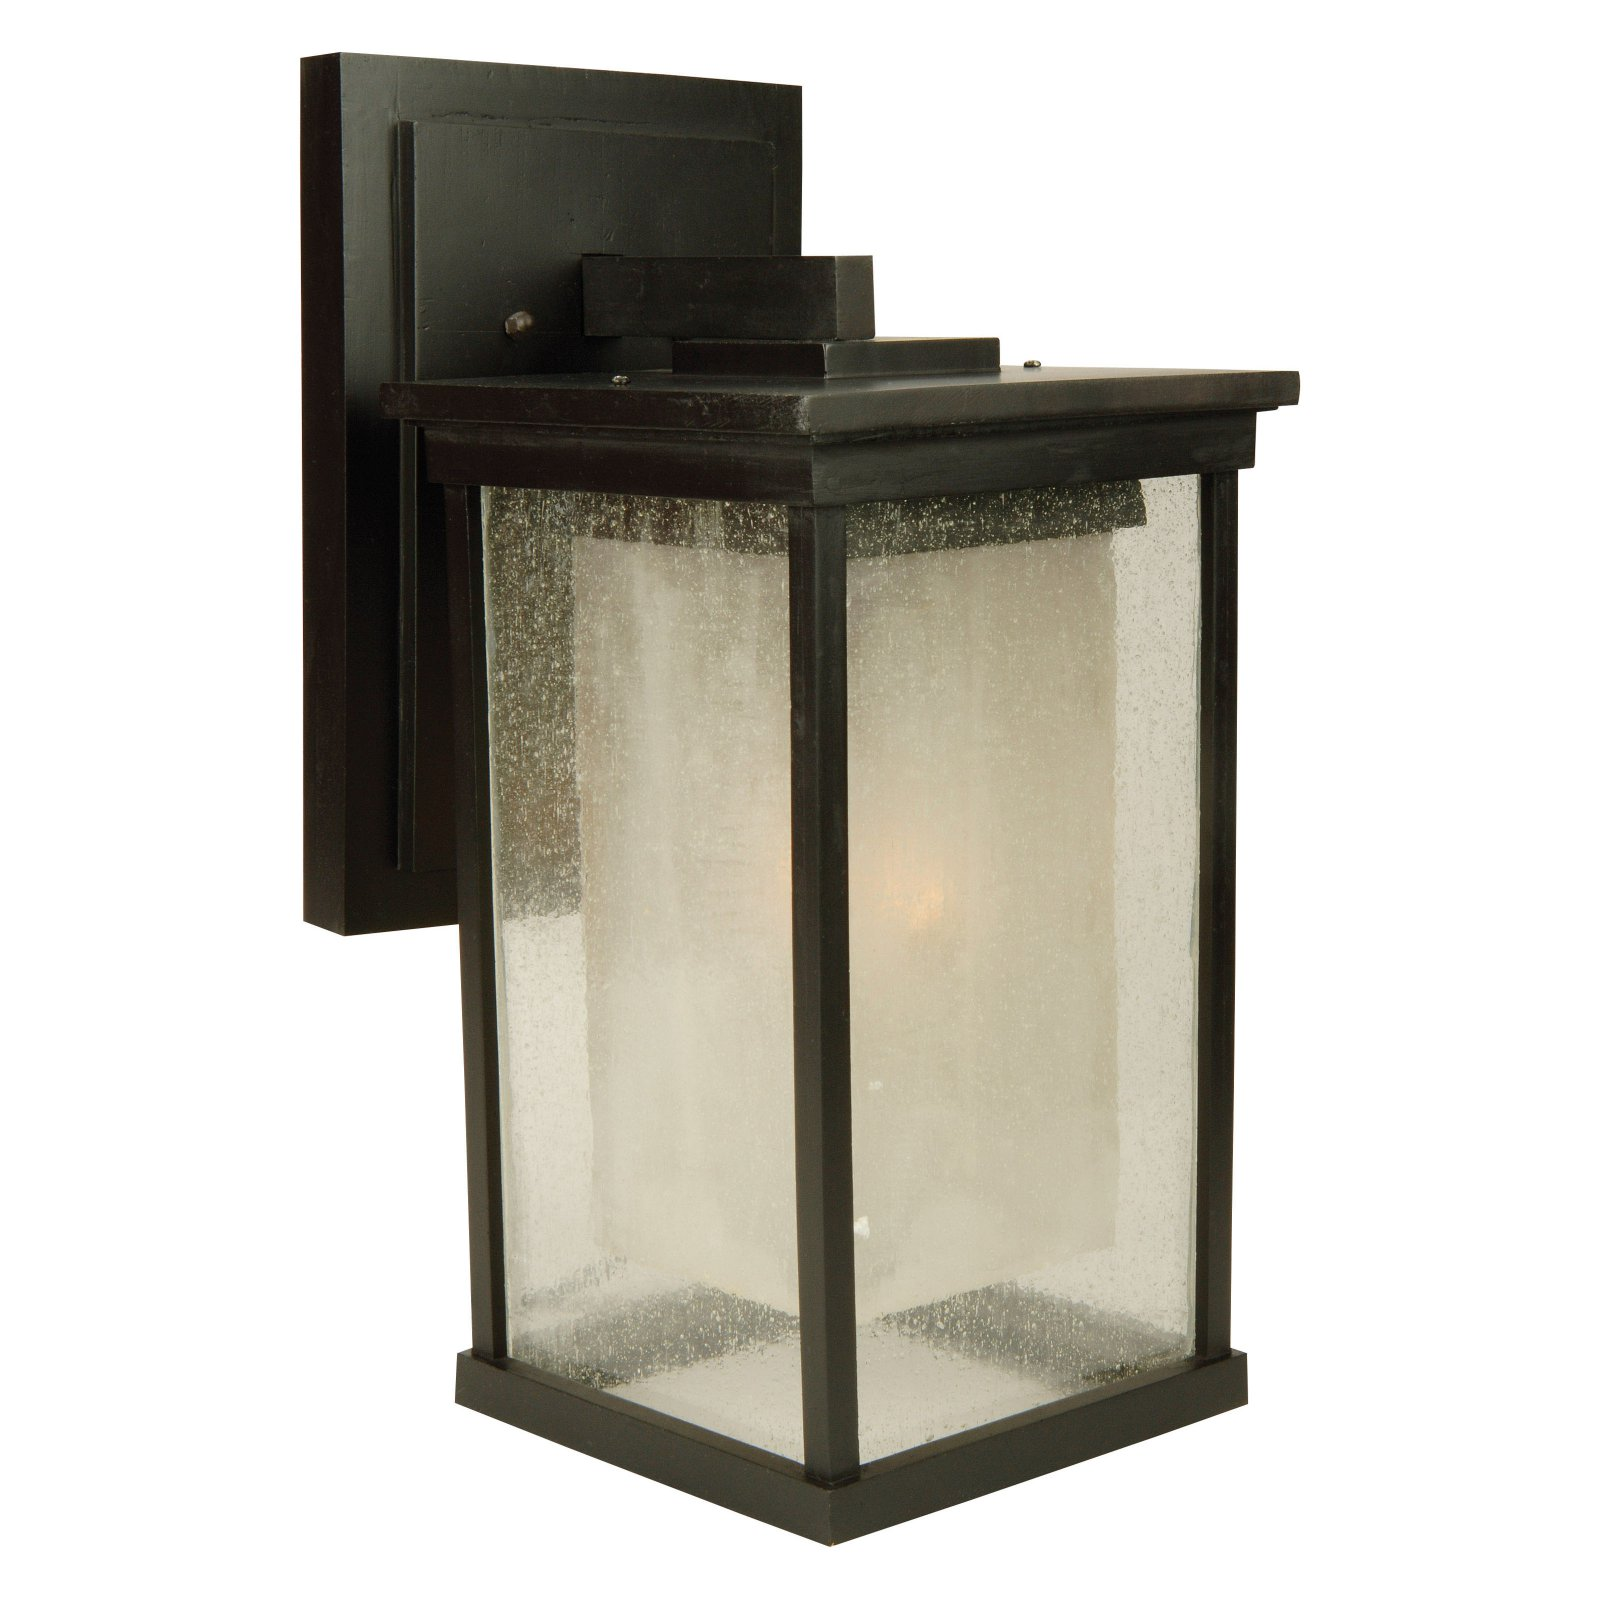 Craftmade Riviera ES Z3724-NRG Large Outdoor Wall Mount Light